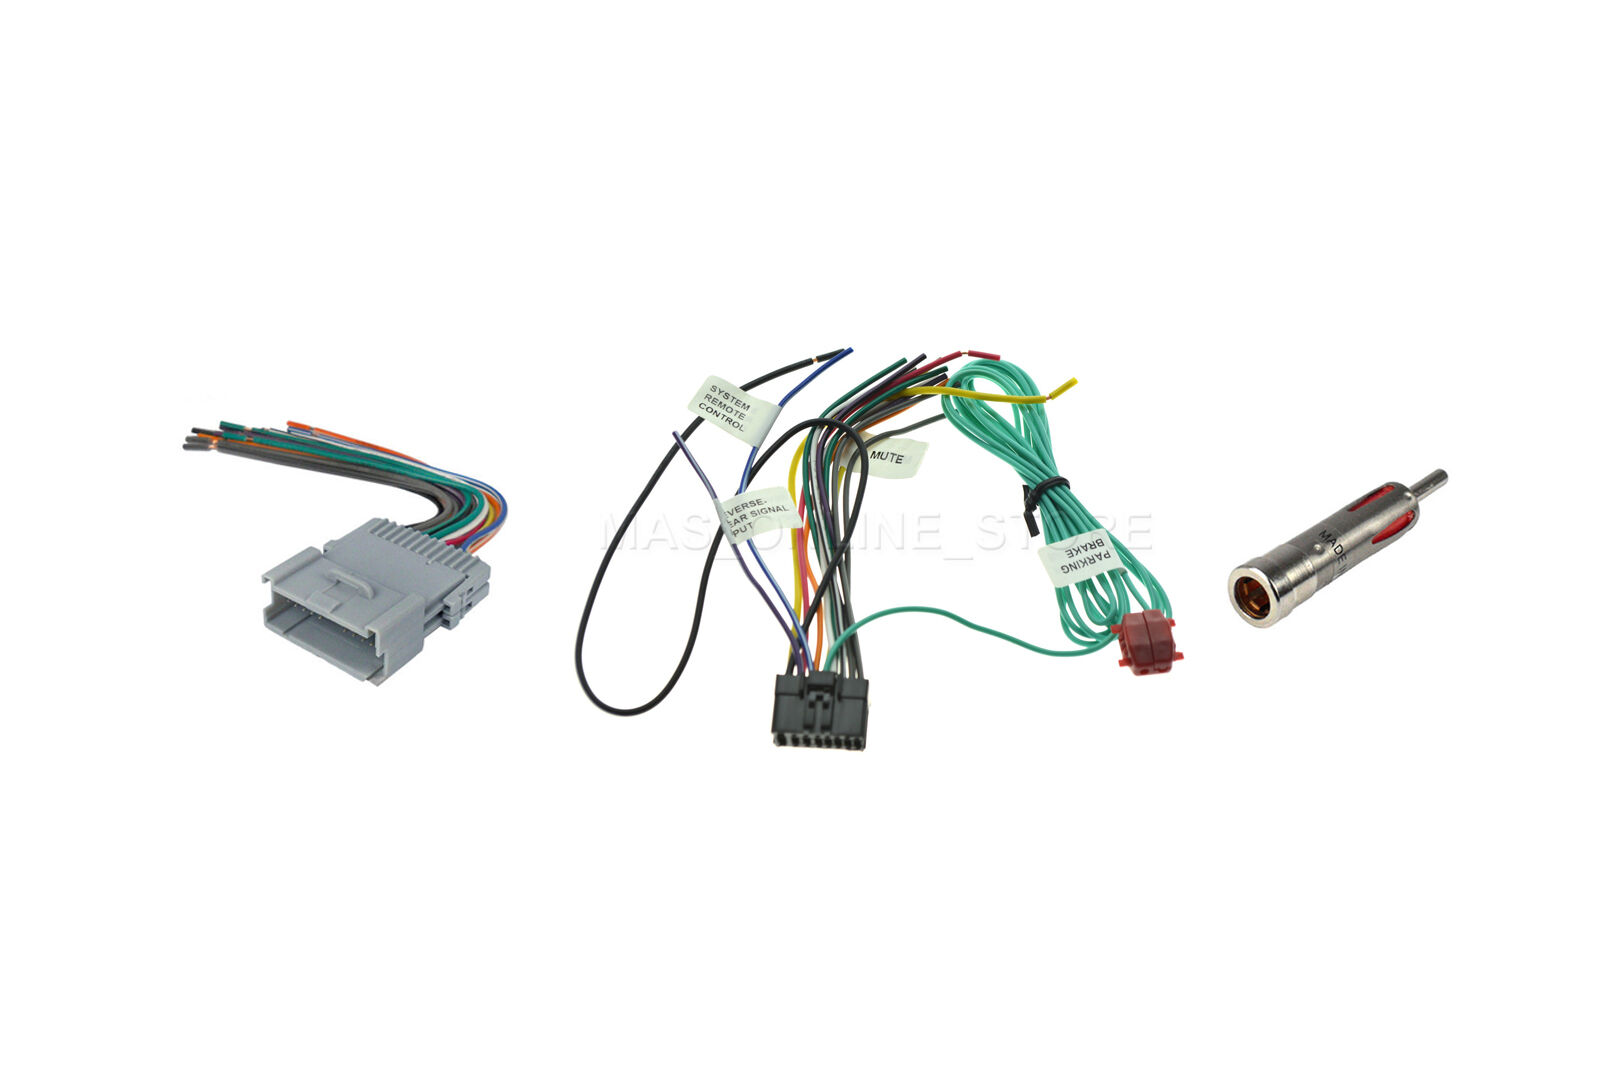 Chevrolet Car Stereo Wiring Harness Wire Pioneer Avh X1500dvd Radio For 1 Of 1only 5 Available